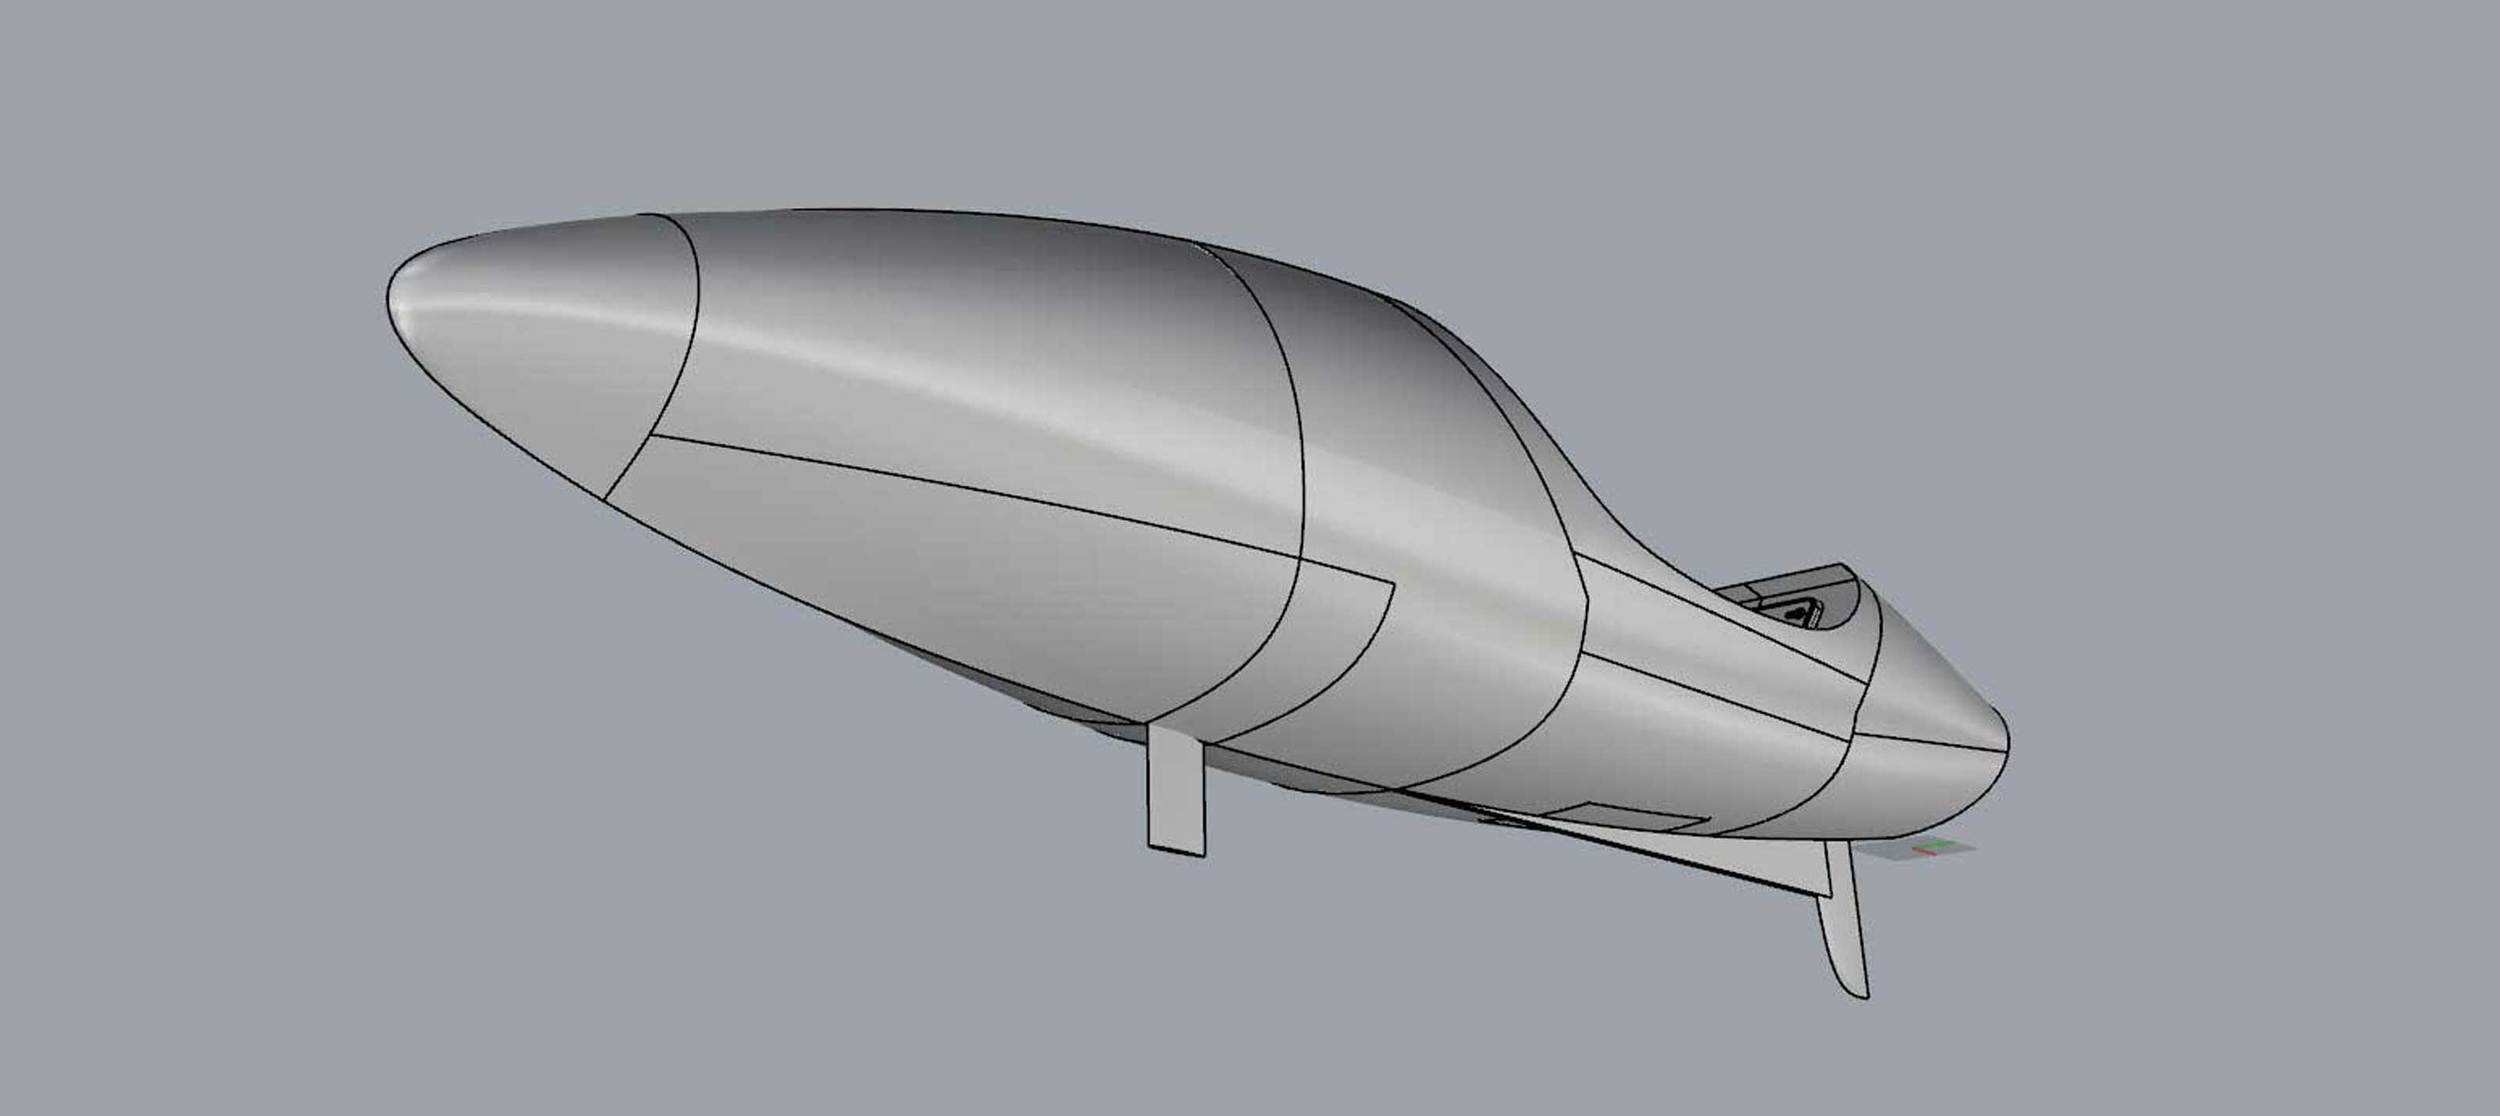 """The boat is made from a very strong but light Carbon Fibre & Kevlar foam sandwich construction. The shell of the hull is light enough to be lifted by one man prior to fitting out. The underwater profile is optimised for surfing the Southern Ocean swells, the daggerboard and rudder enable the boat to keep on the best course.       0   0   1   52   302   Brand Brewery   2   1   353   14.0                   Normal   0           false   false   false     EN-US   JA   X-NONE                                                                                                                                                                                                                                                                                                                                                                       /* Style Definitions */ table.MsoNormalTable {mso-style-name:""""Table Normal""""; mso-tstyle-rowband-size:0; mso-tstyle-colband-size:0; mso-style-noshow:yes; mso-style-priority:99; mso-style-parent:""""""""; mso-padding-alt:0cm 5.4pt 0cm 5.4pt; mso-para-margin:0cm; mso-para-margin-bottom:.0001pt; mso-pagination:widow-orphan; font-size:12.0pt; font-family:Cambria; mso-ascii-font-family:Cambria; mso-ascii-theme-font:minor-latin; mso-hansi-font-family:Cambria; mso-hansi-theme-font:minor-latin; mso-ansi-language:EN-US;}"""